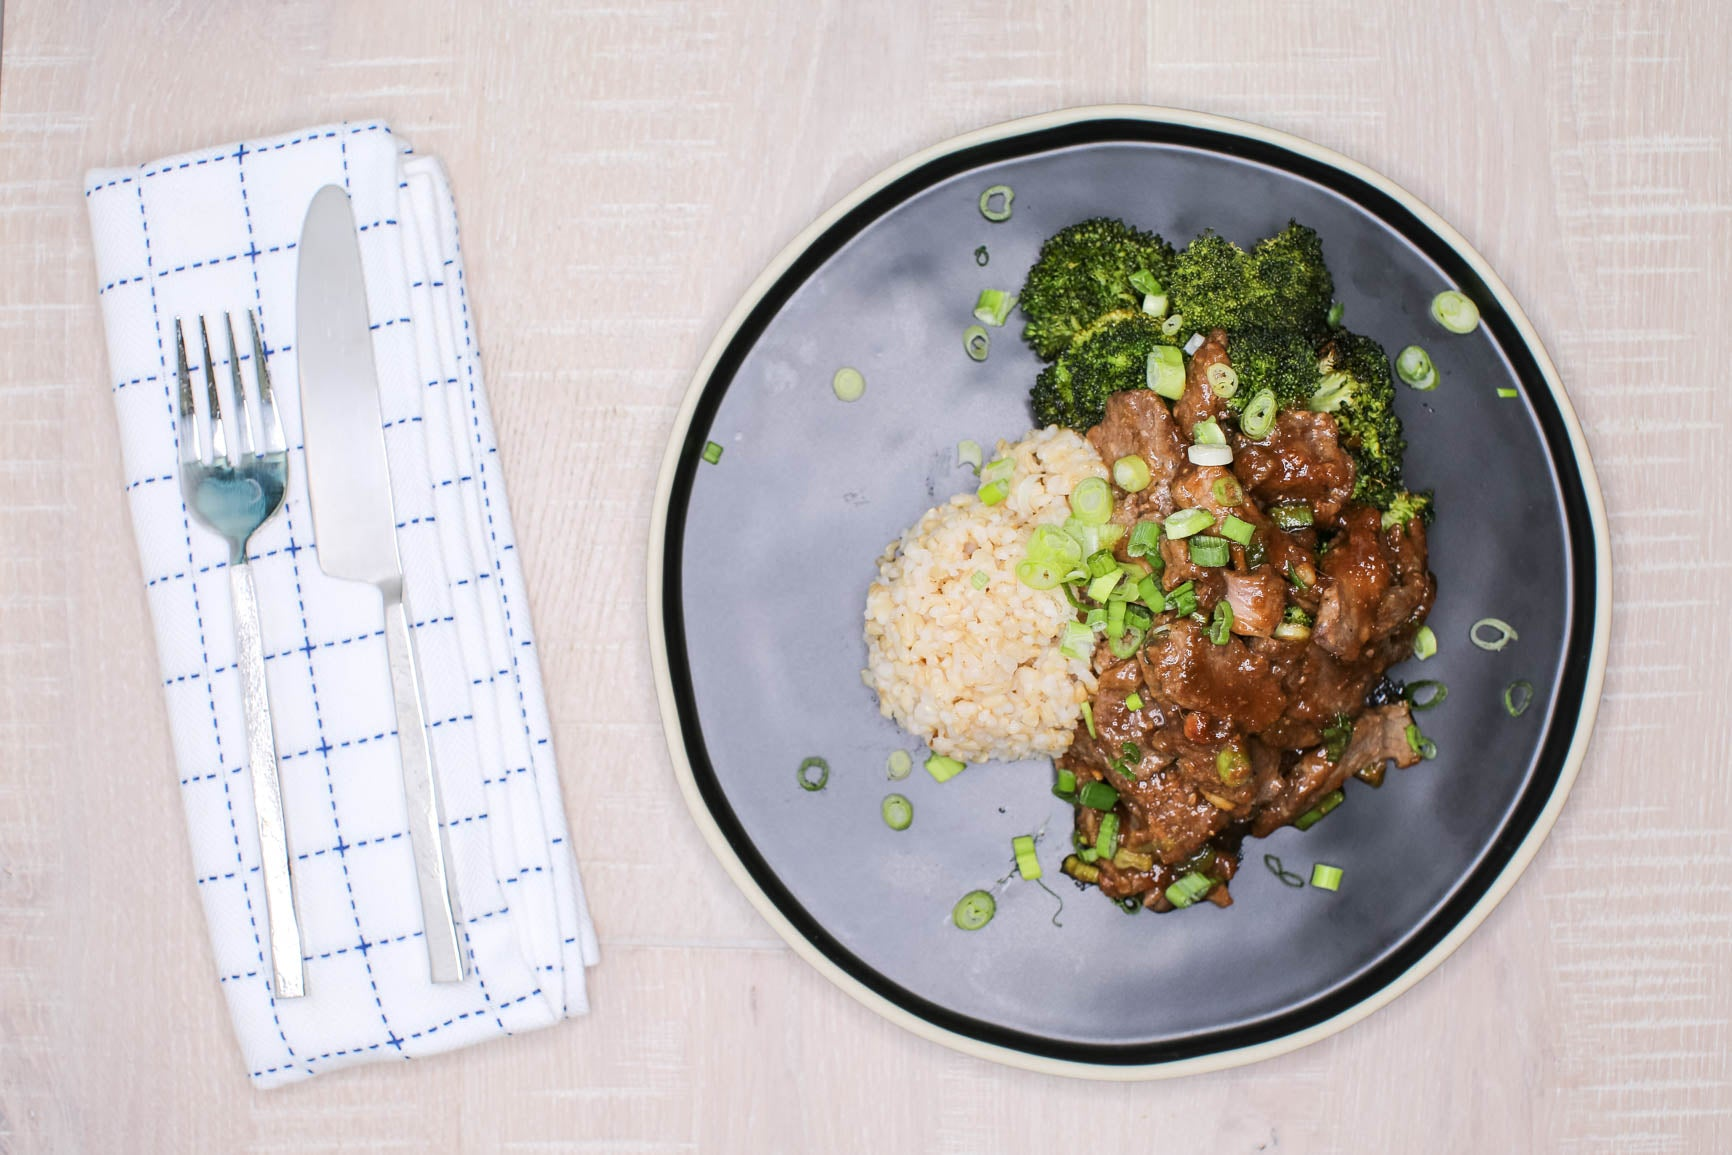 Broccoli Beef w/ Brown Rice